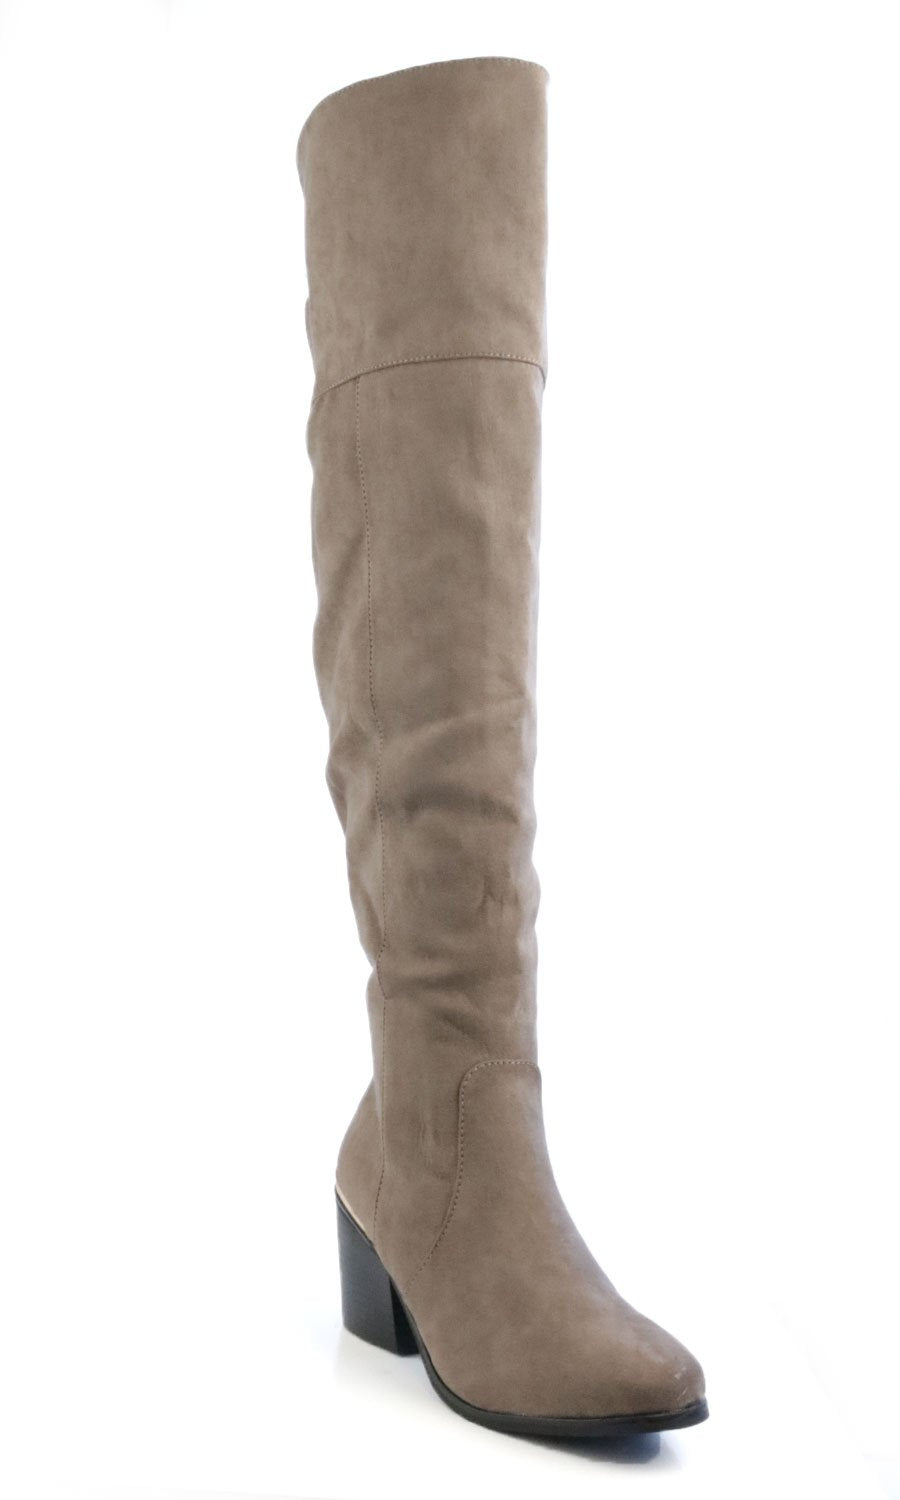 Cheyenne - Over the Knee Boots